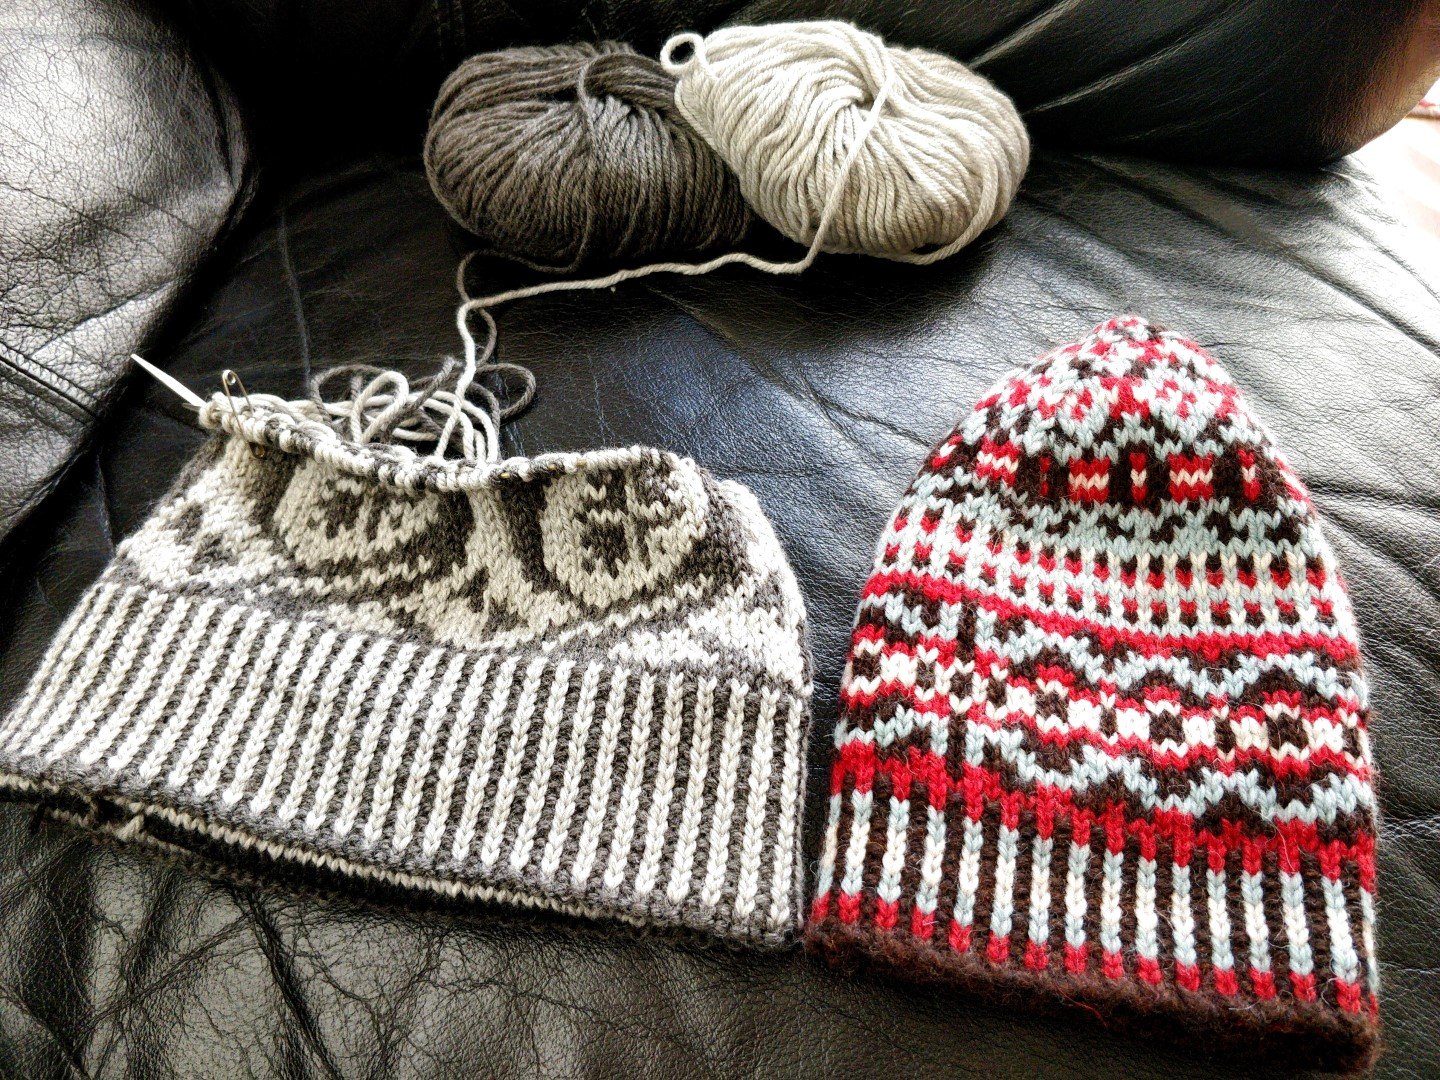 black and white hat WIP next to finished colourwork hat